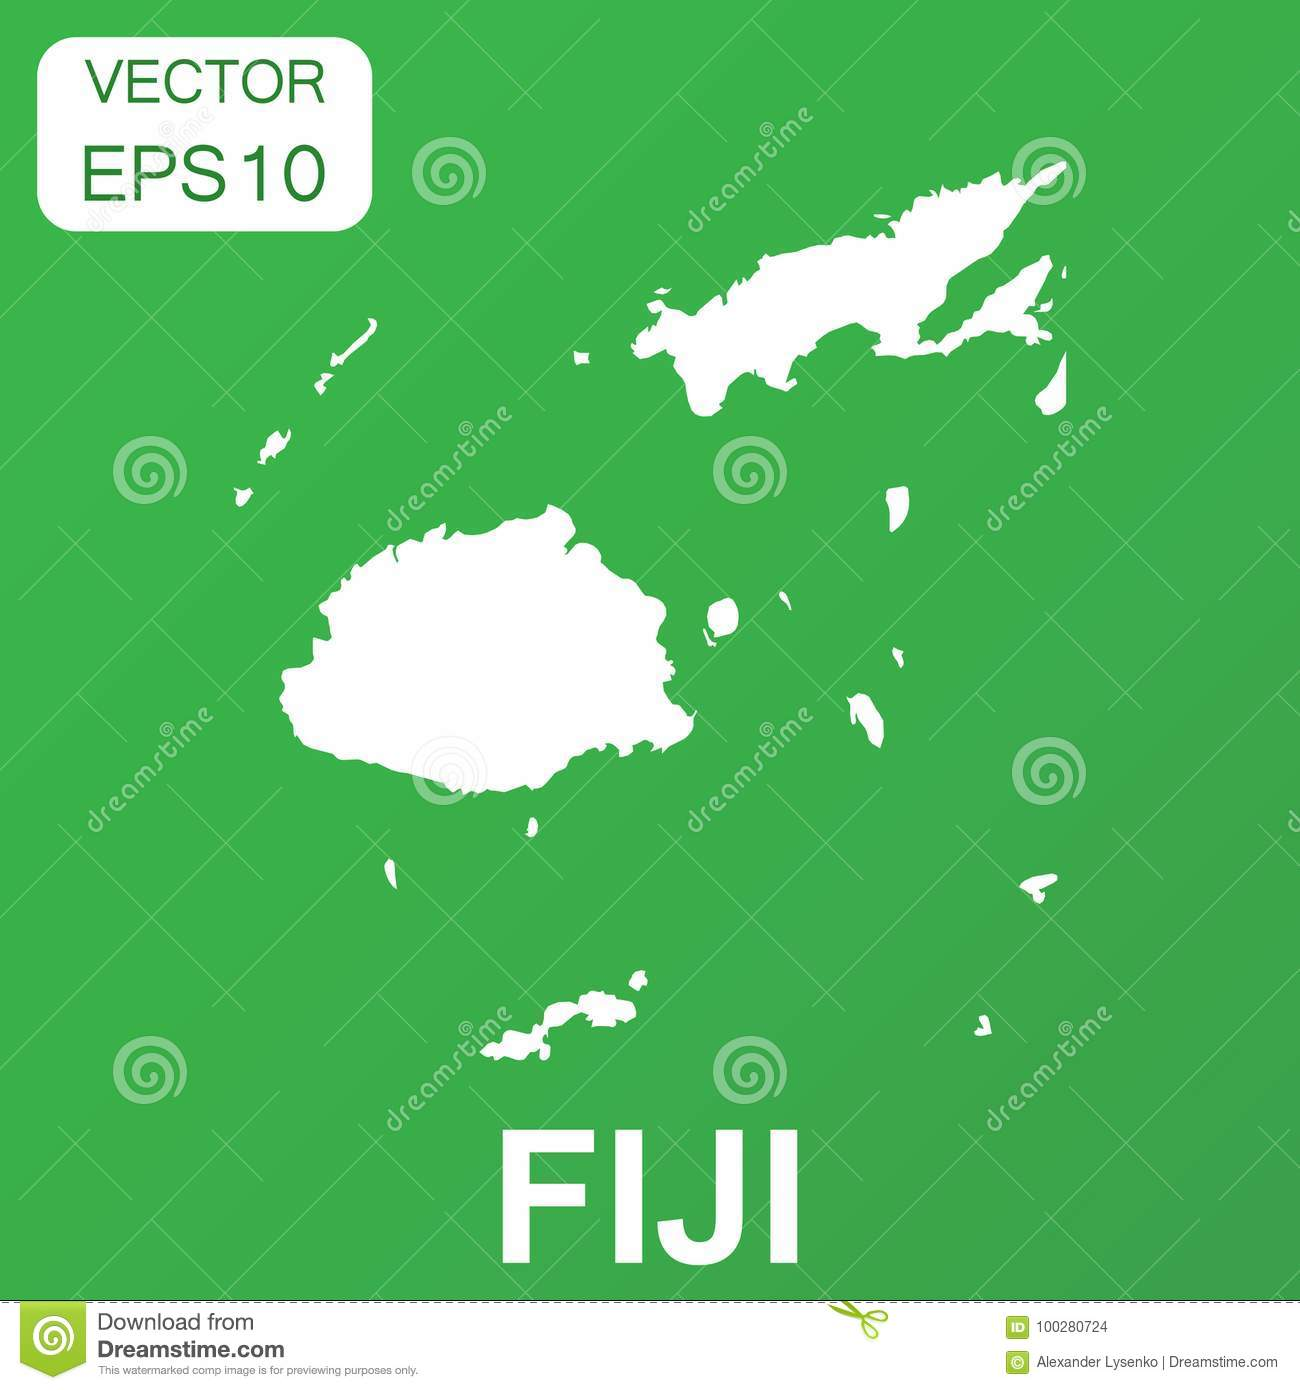 Fiji Map Icon Business Concept Fiji Pictogram Vector Stock